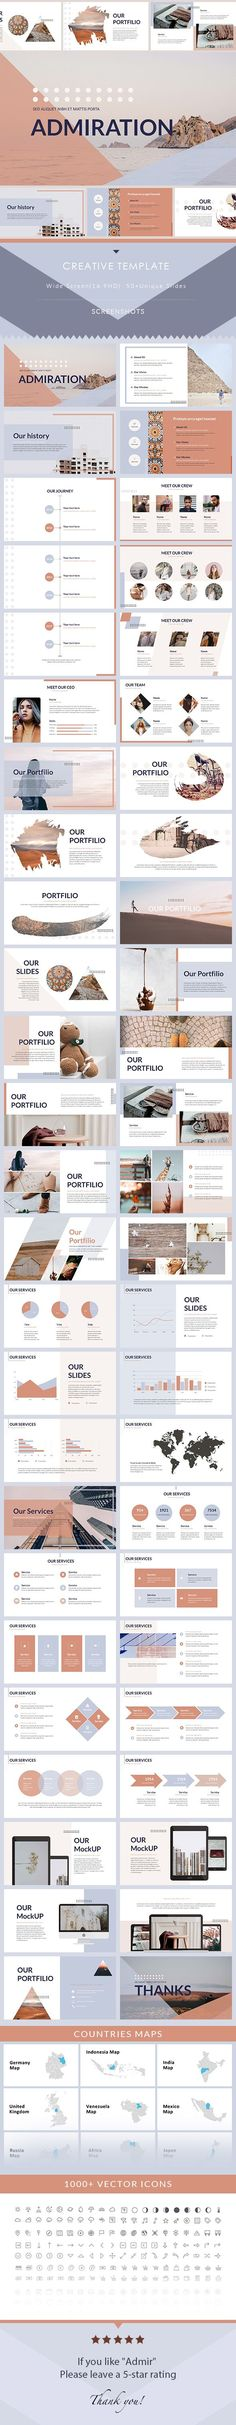 Admir - PowerPoint Presentation Template